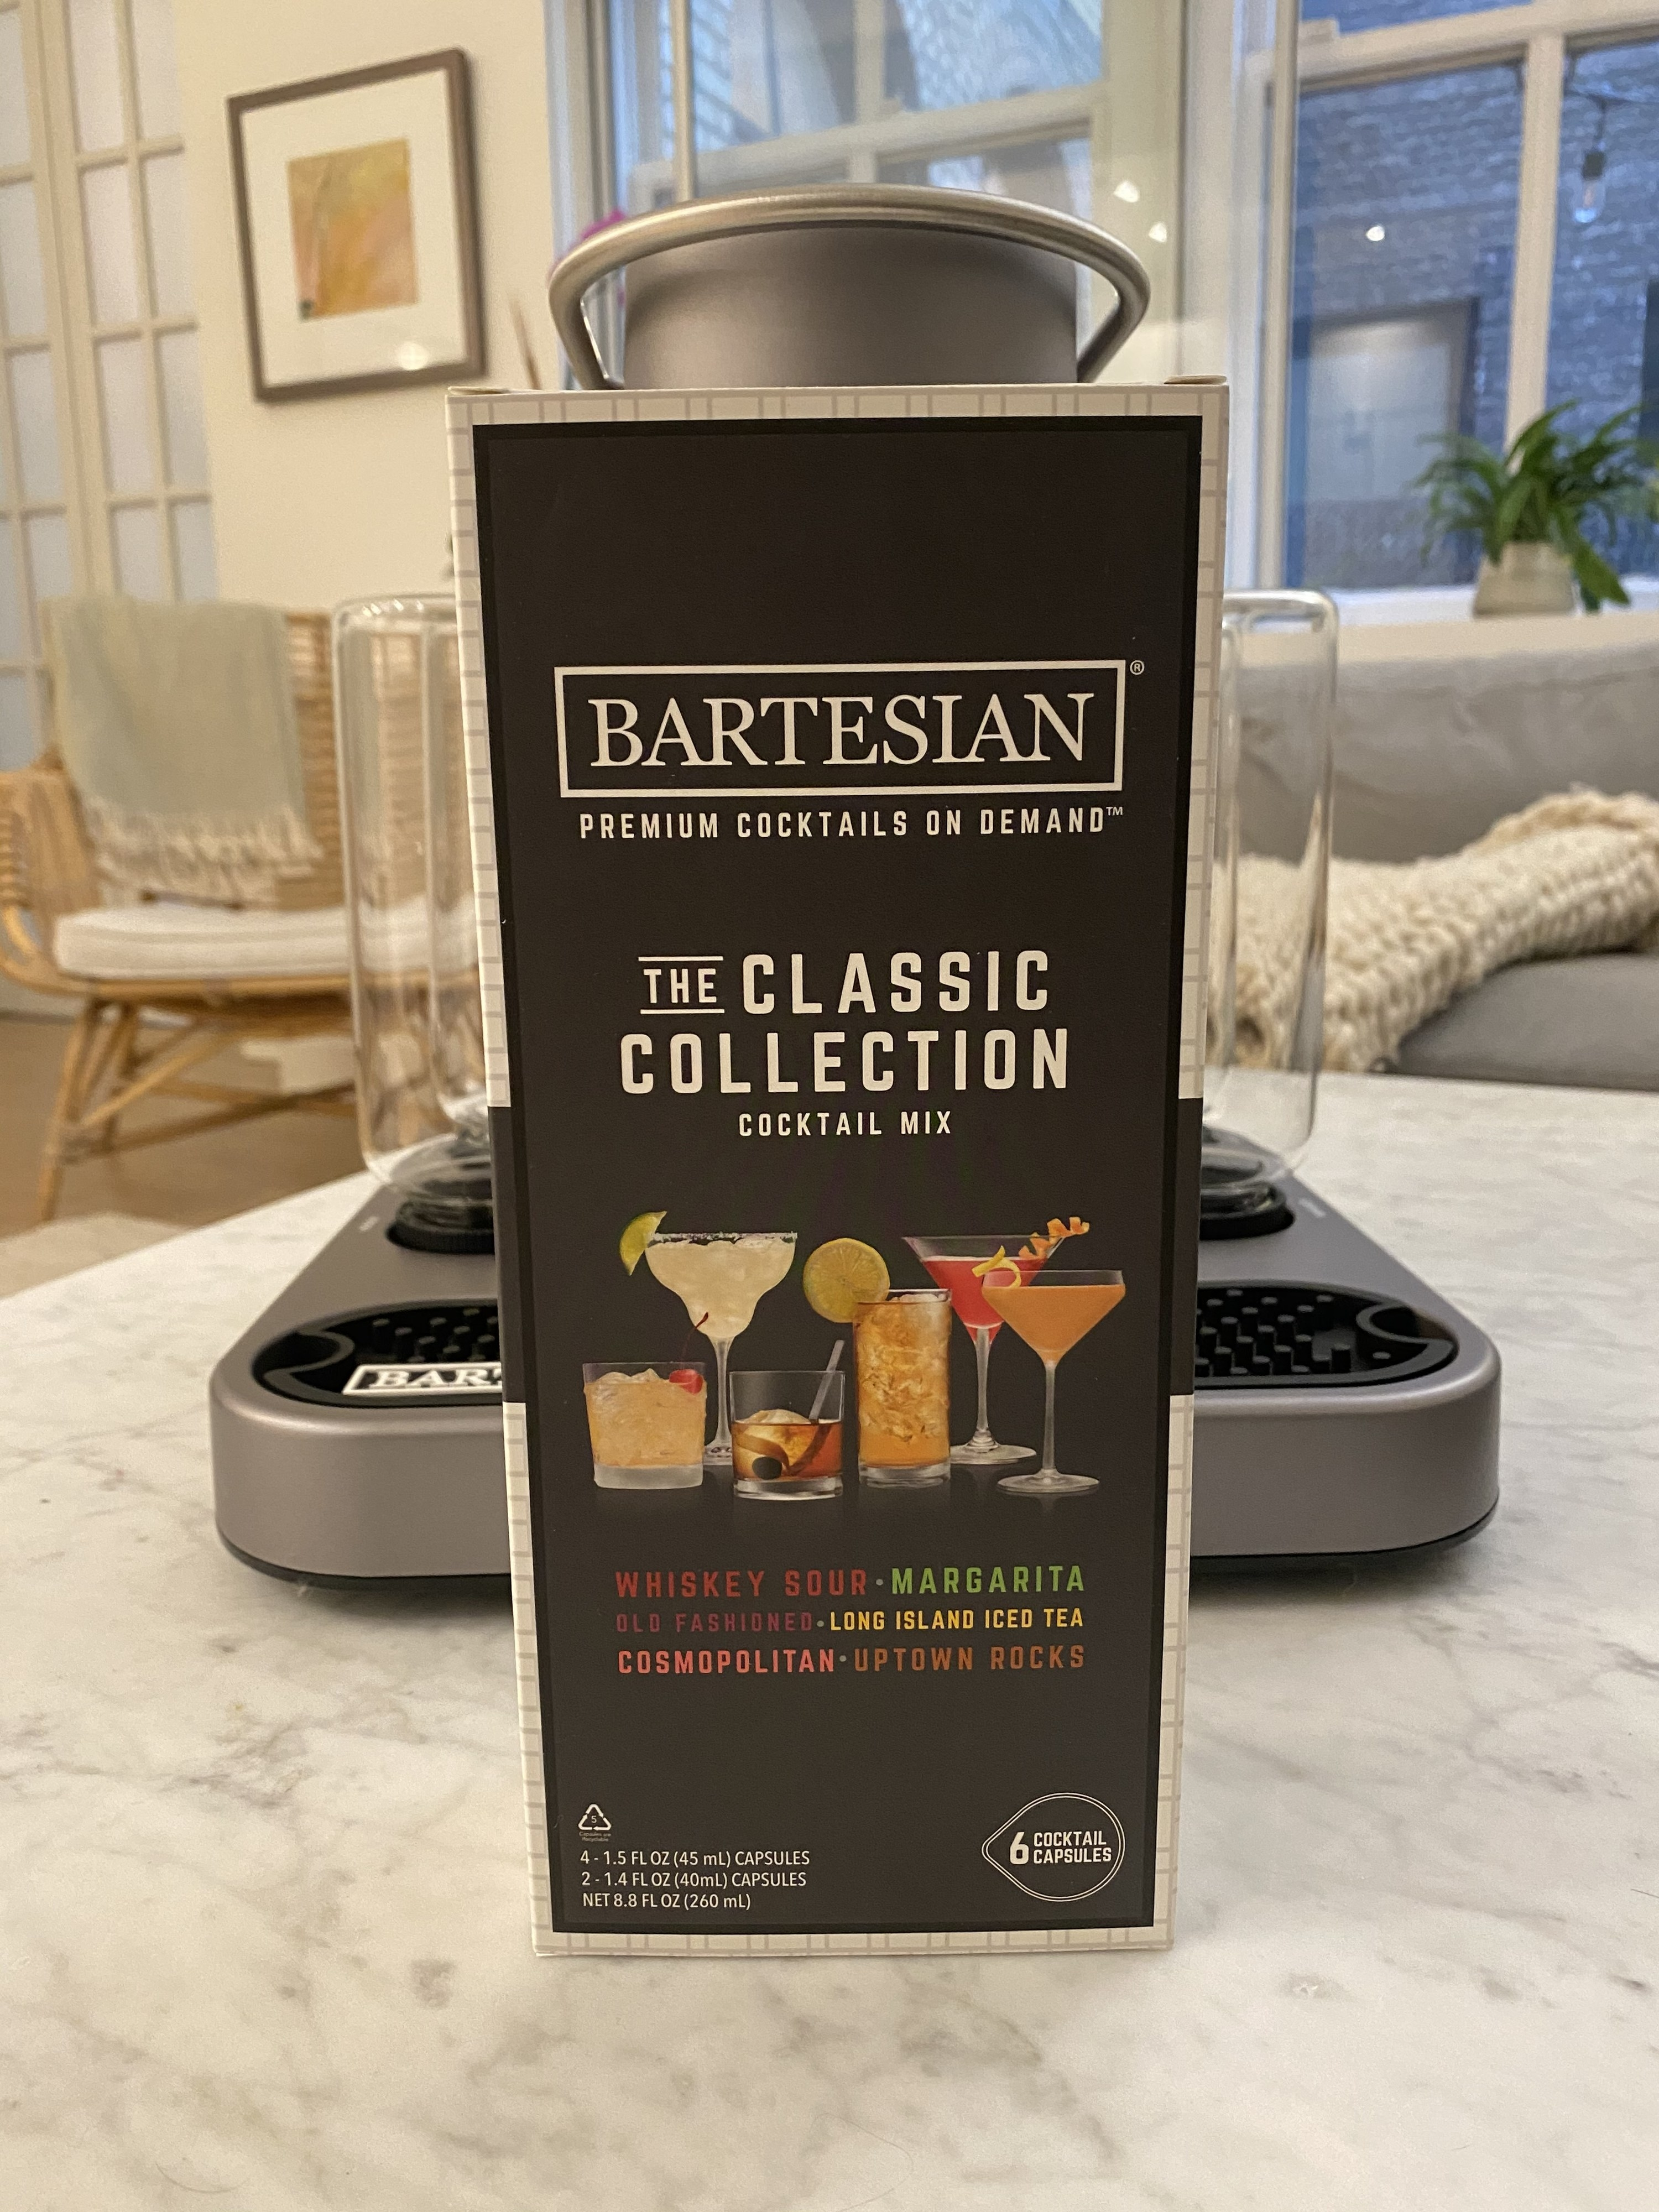 The classic collection of cocktail capsules that fit into the Bartesian machine.